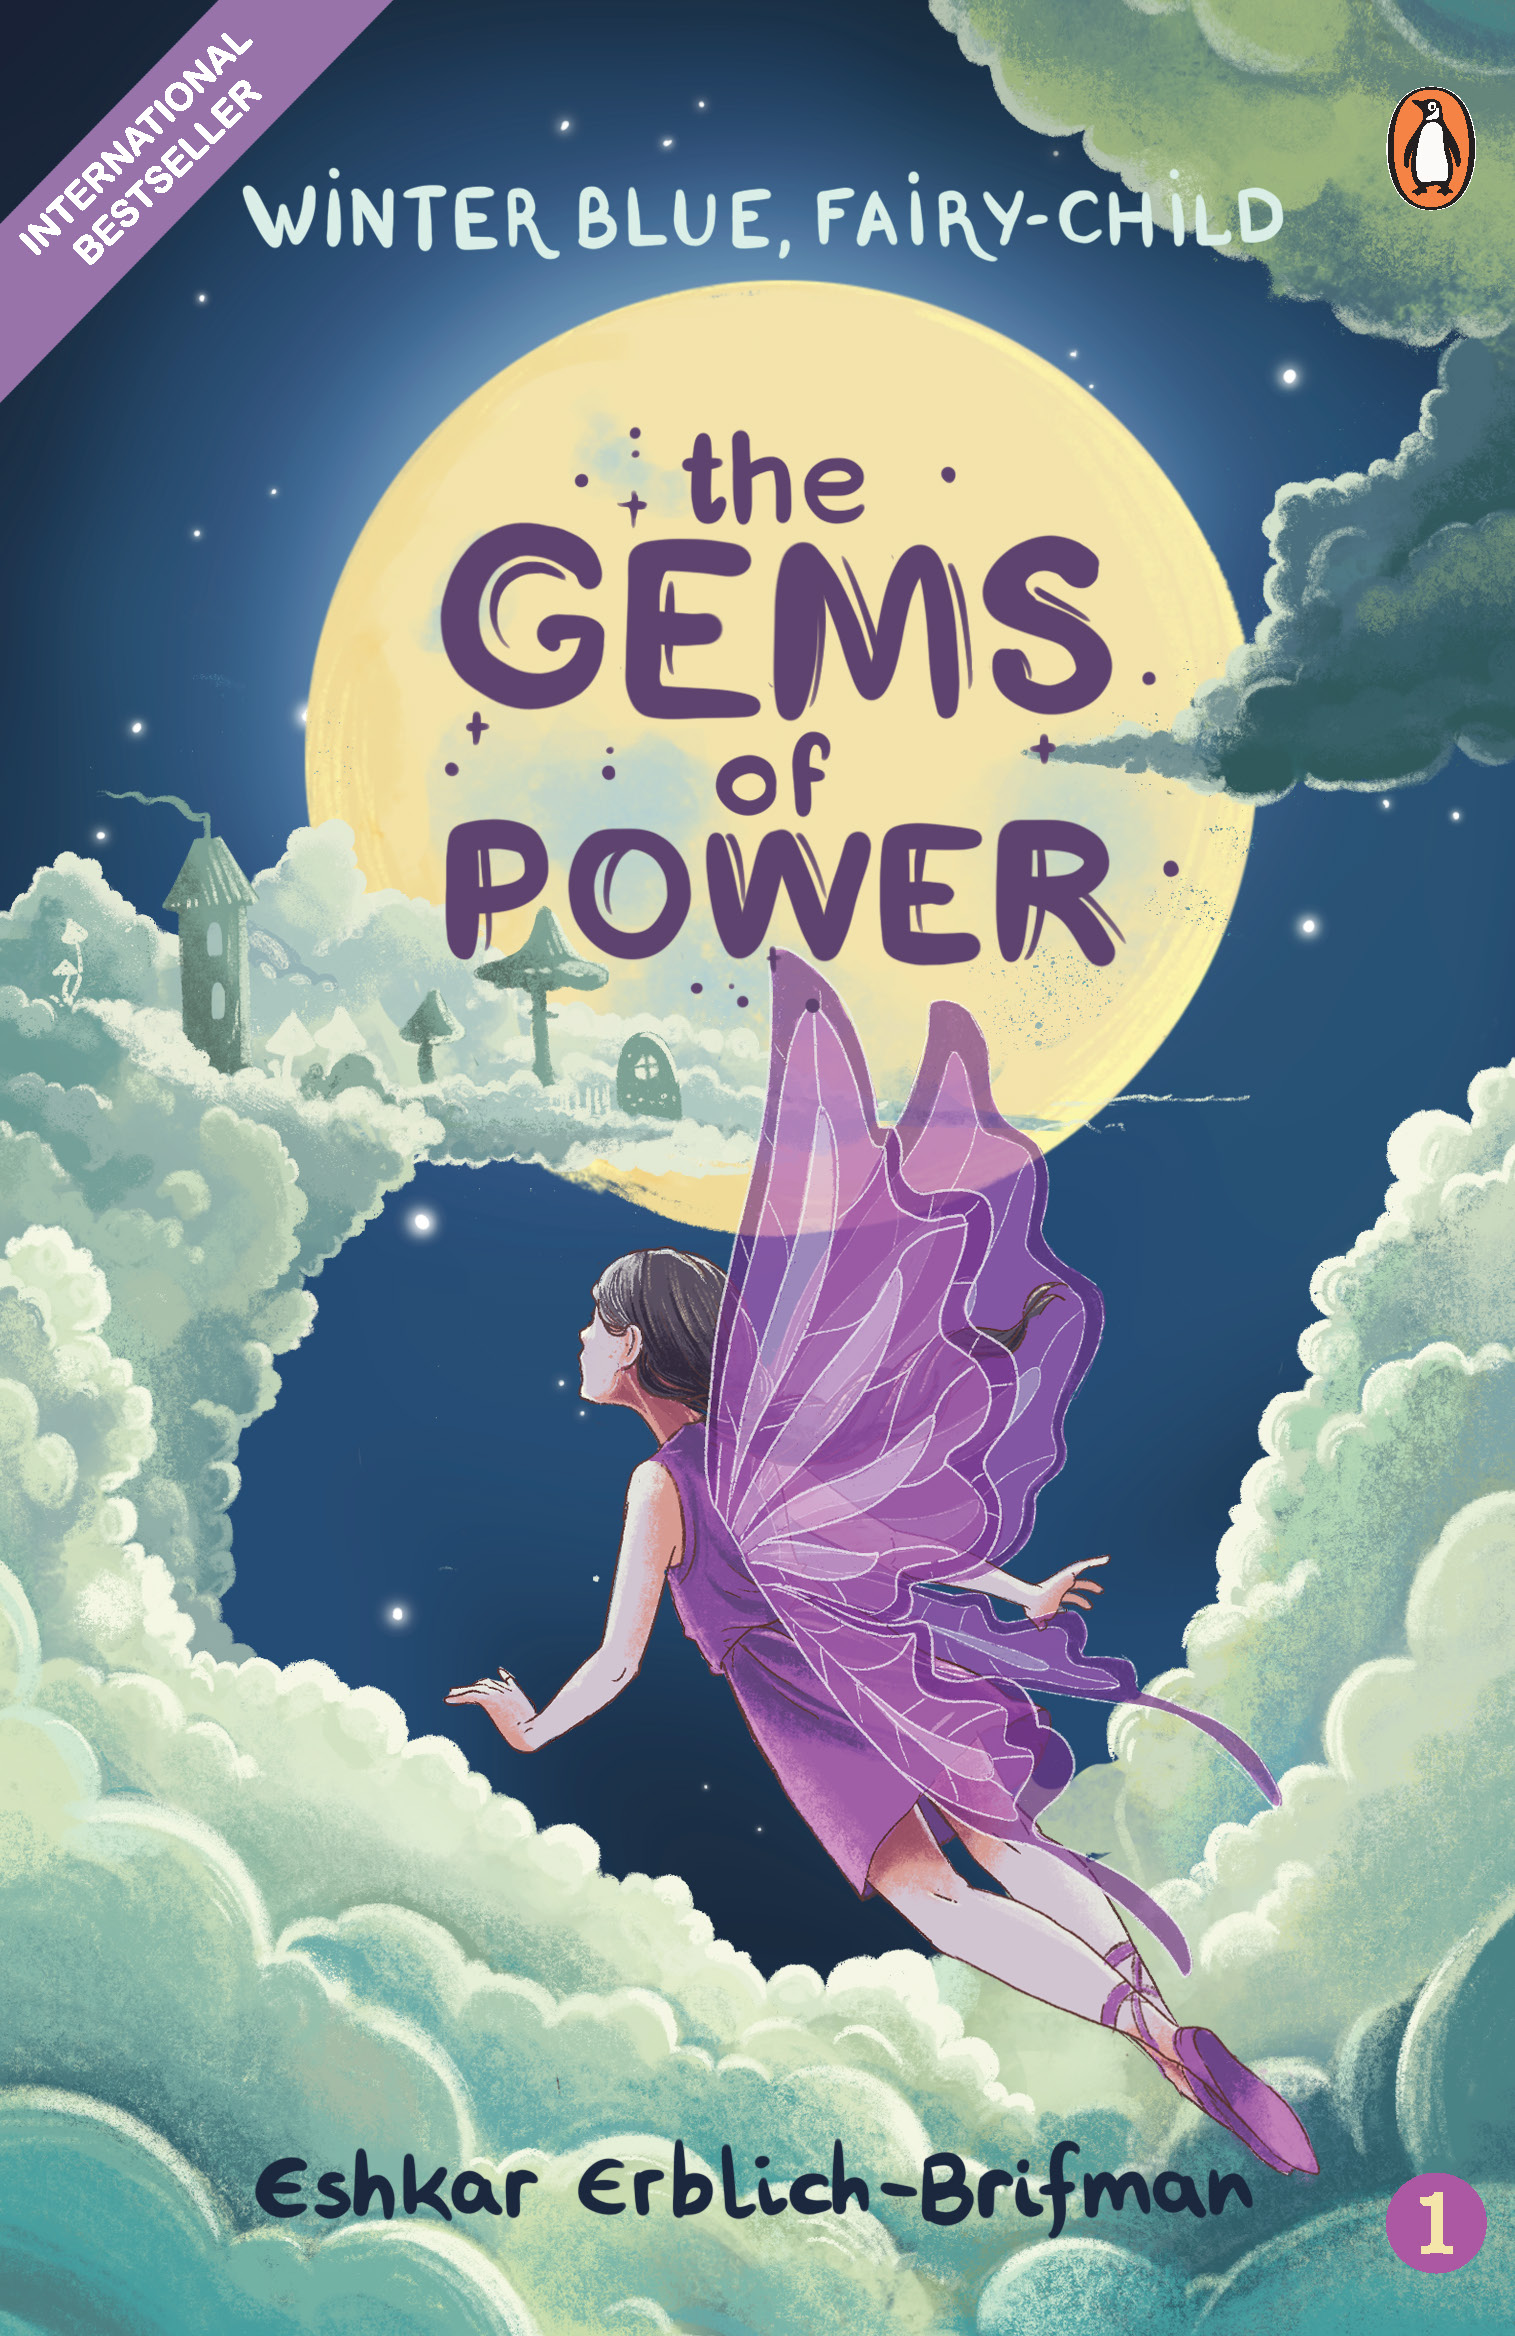 Winter Blue, Fairy Child – The Gems of Power